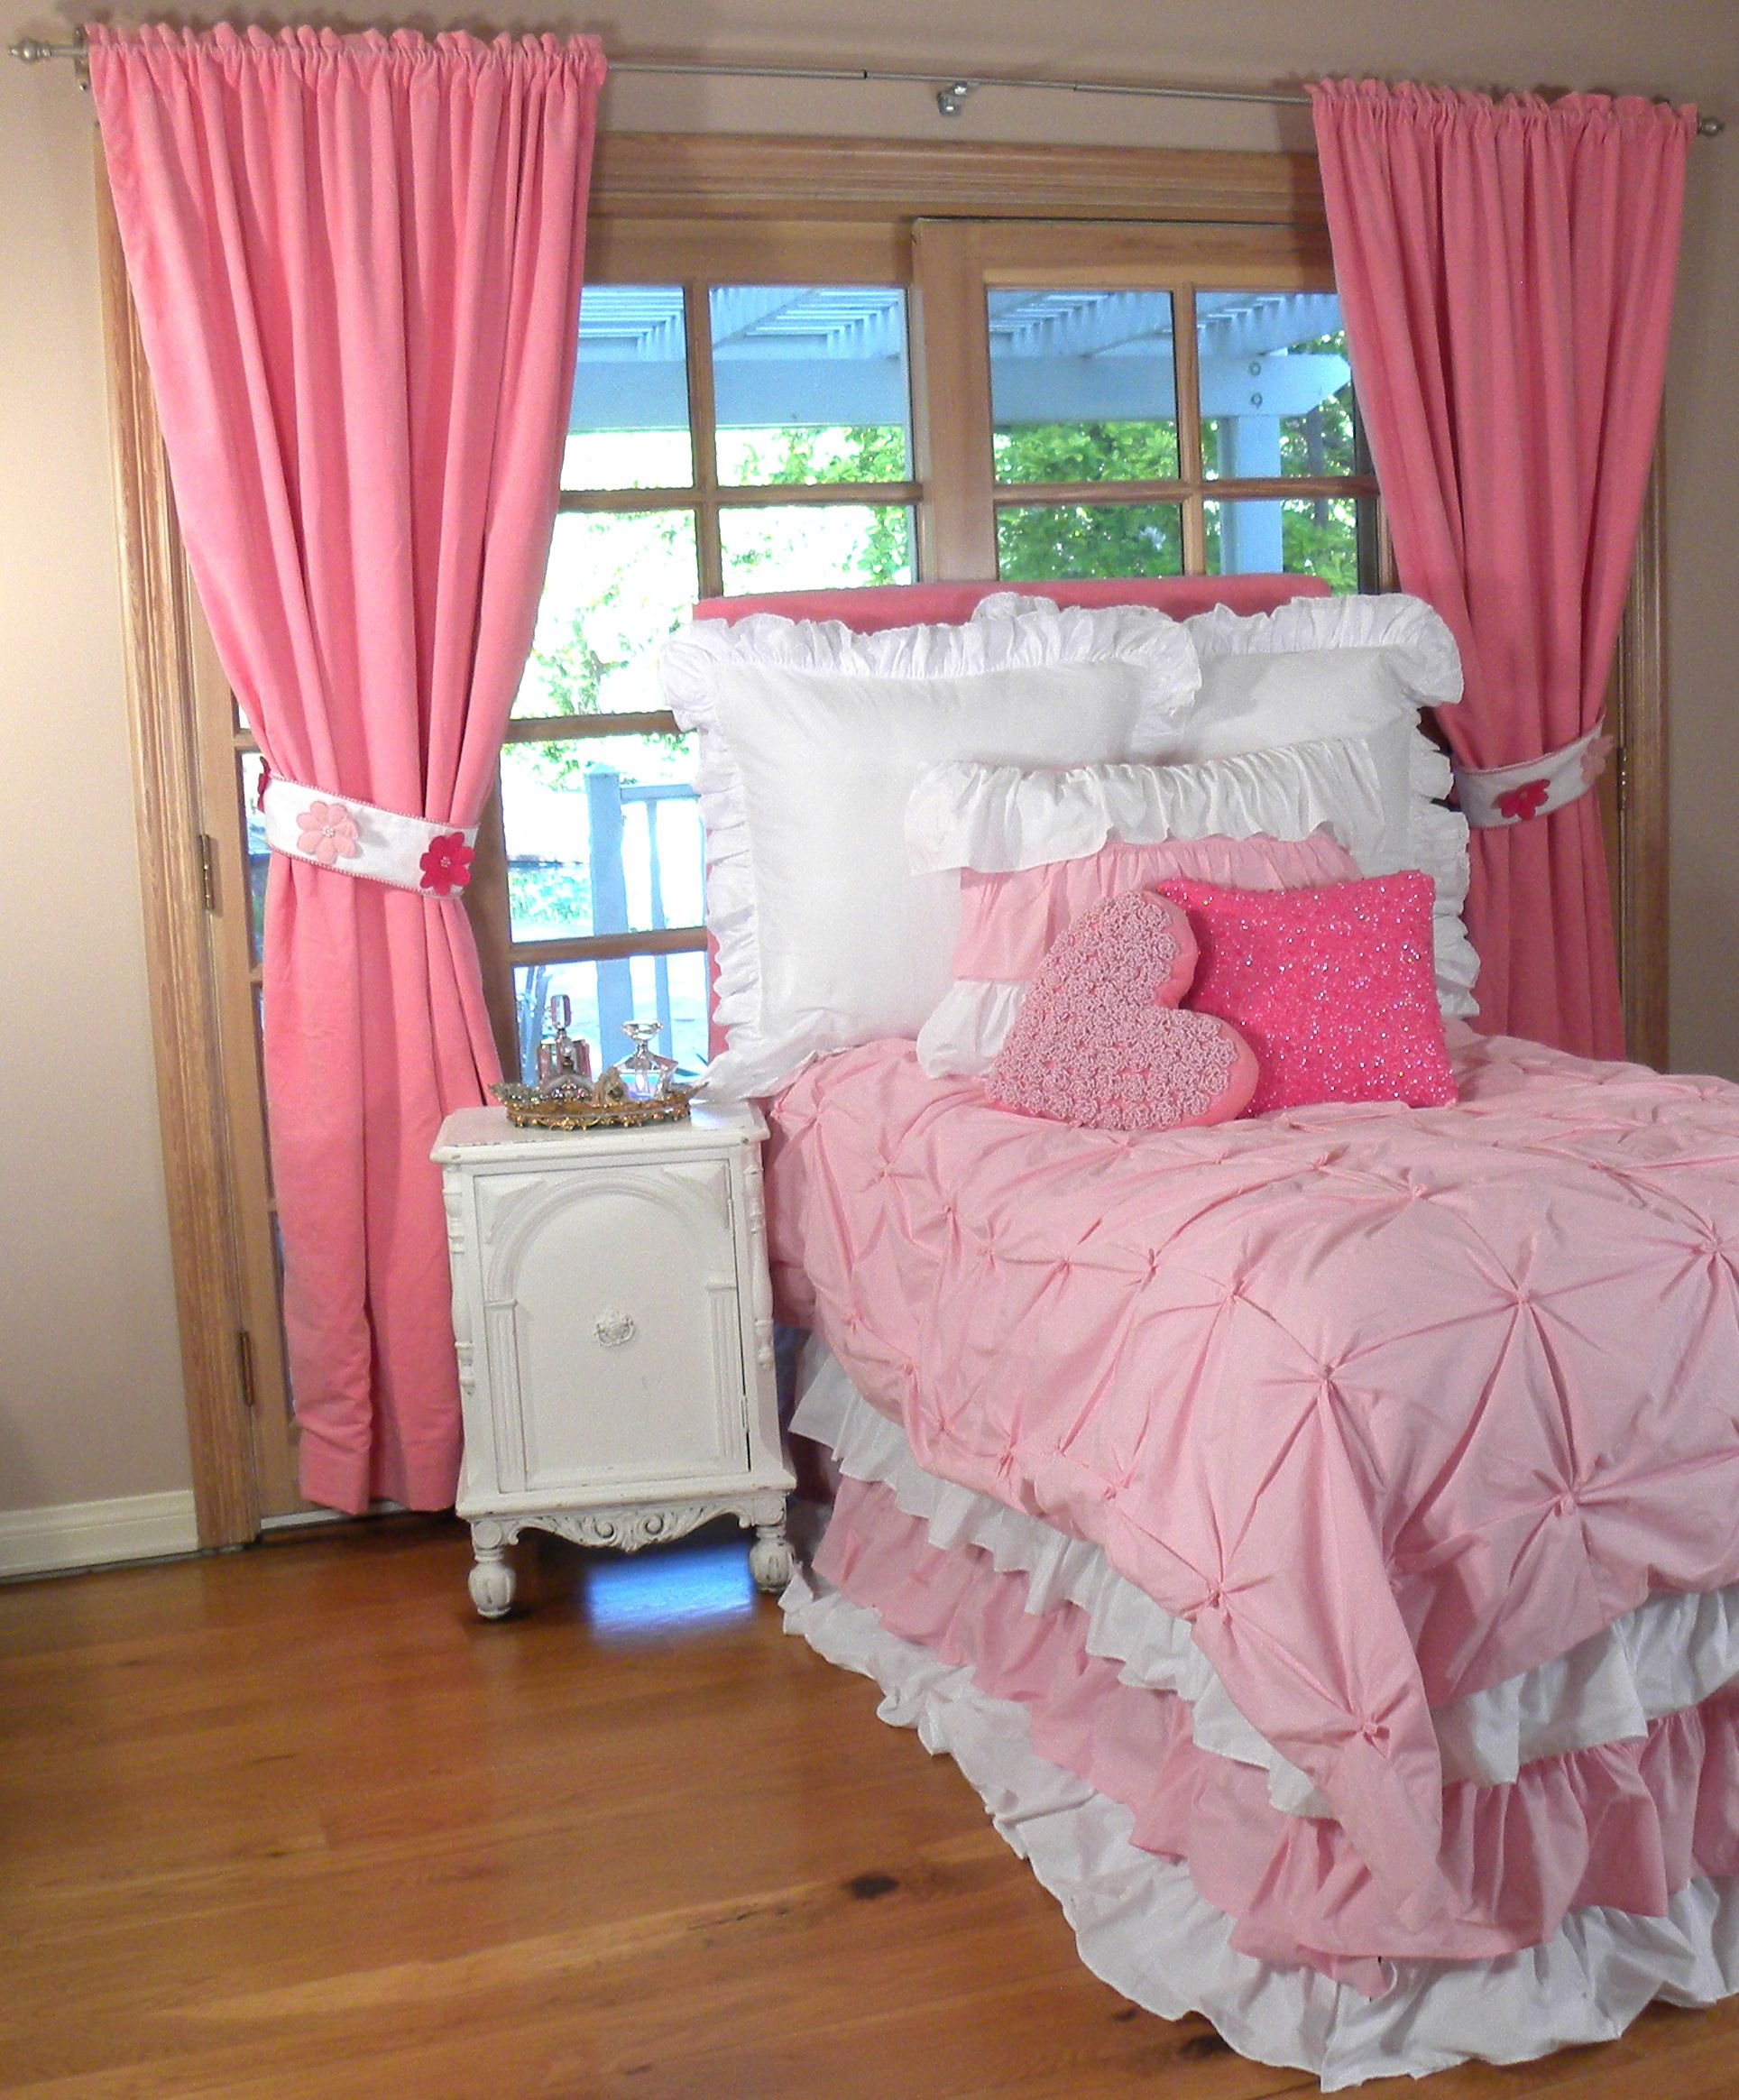 Bed sets for girls - Girls Bedding And D Cor In Pink And White Loveable Ruffles